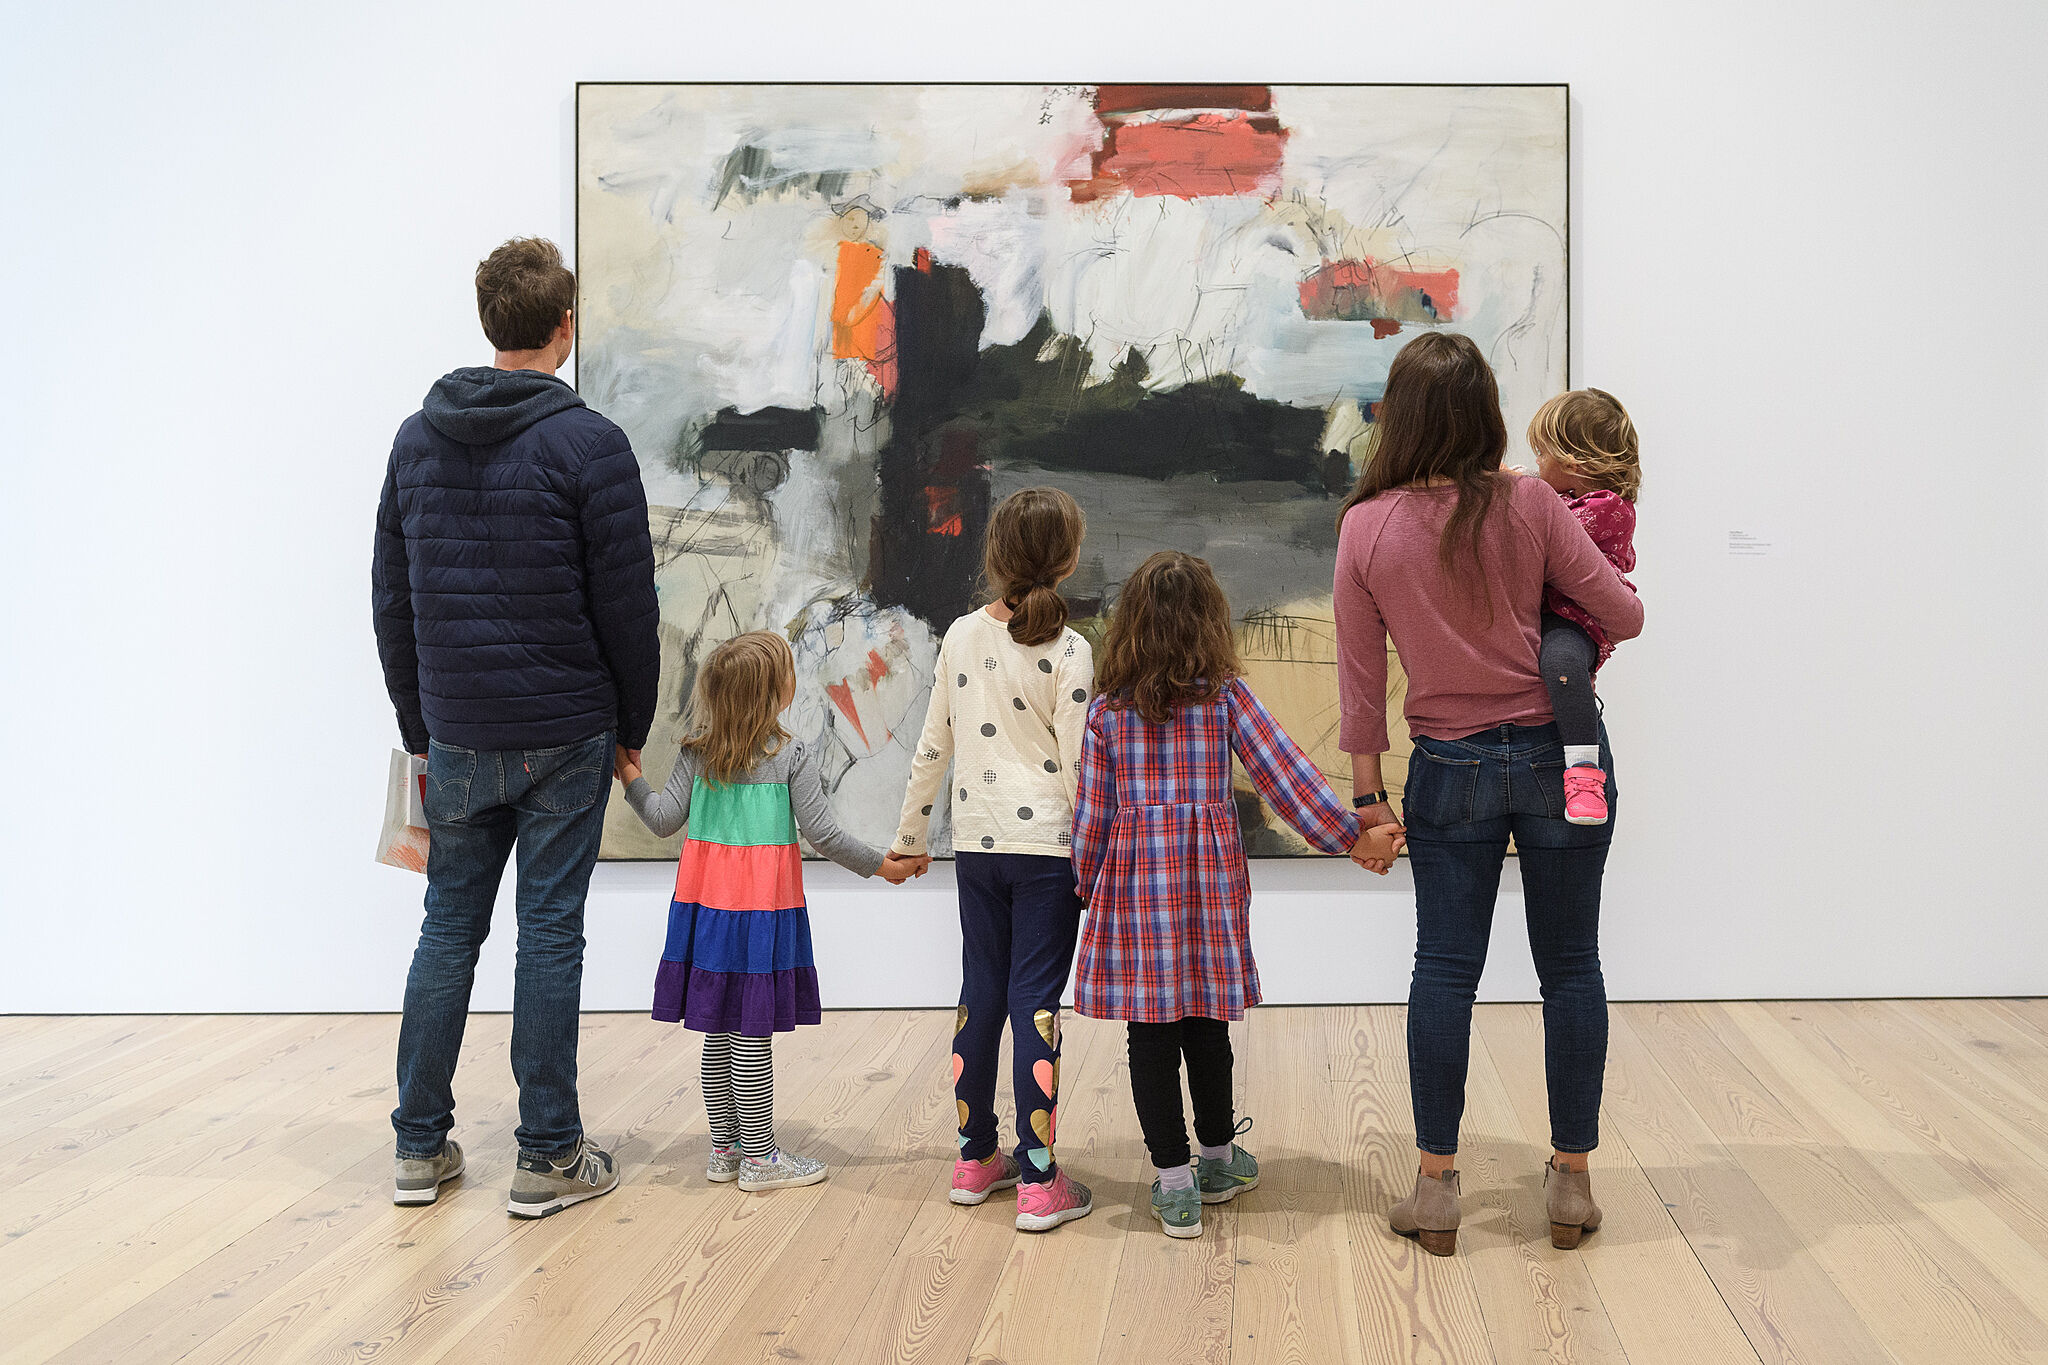 A family holding hands and looking at art.